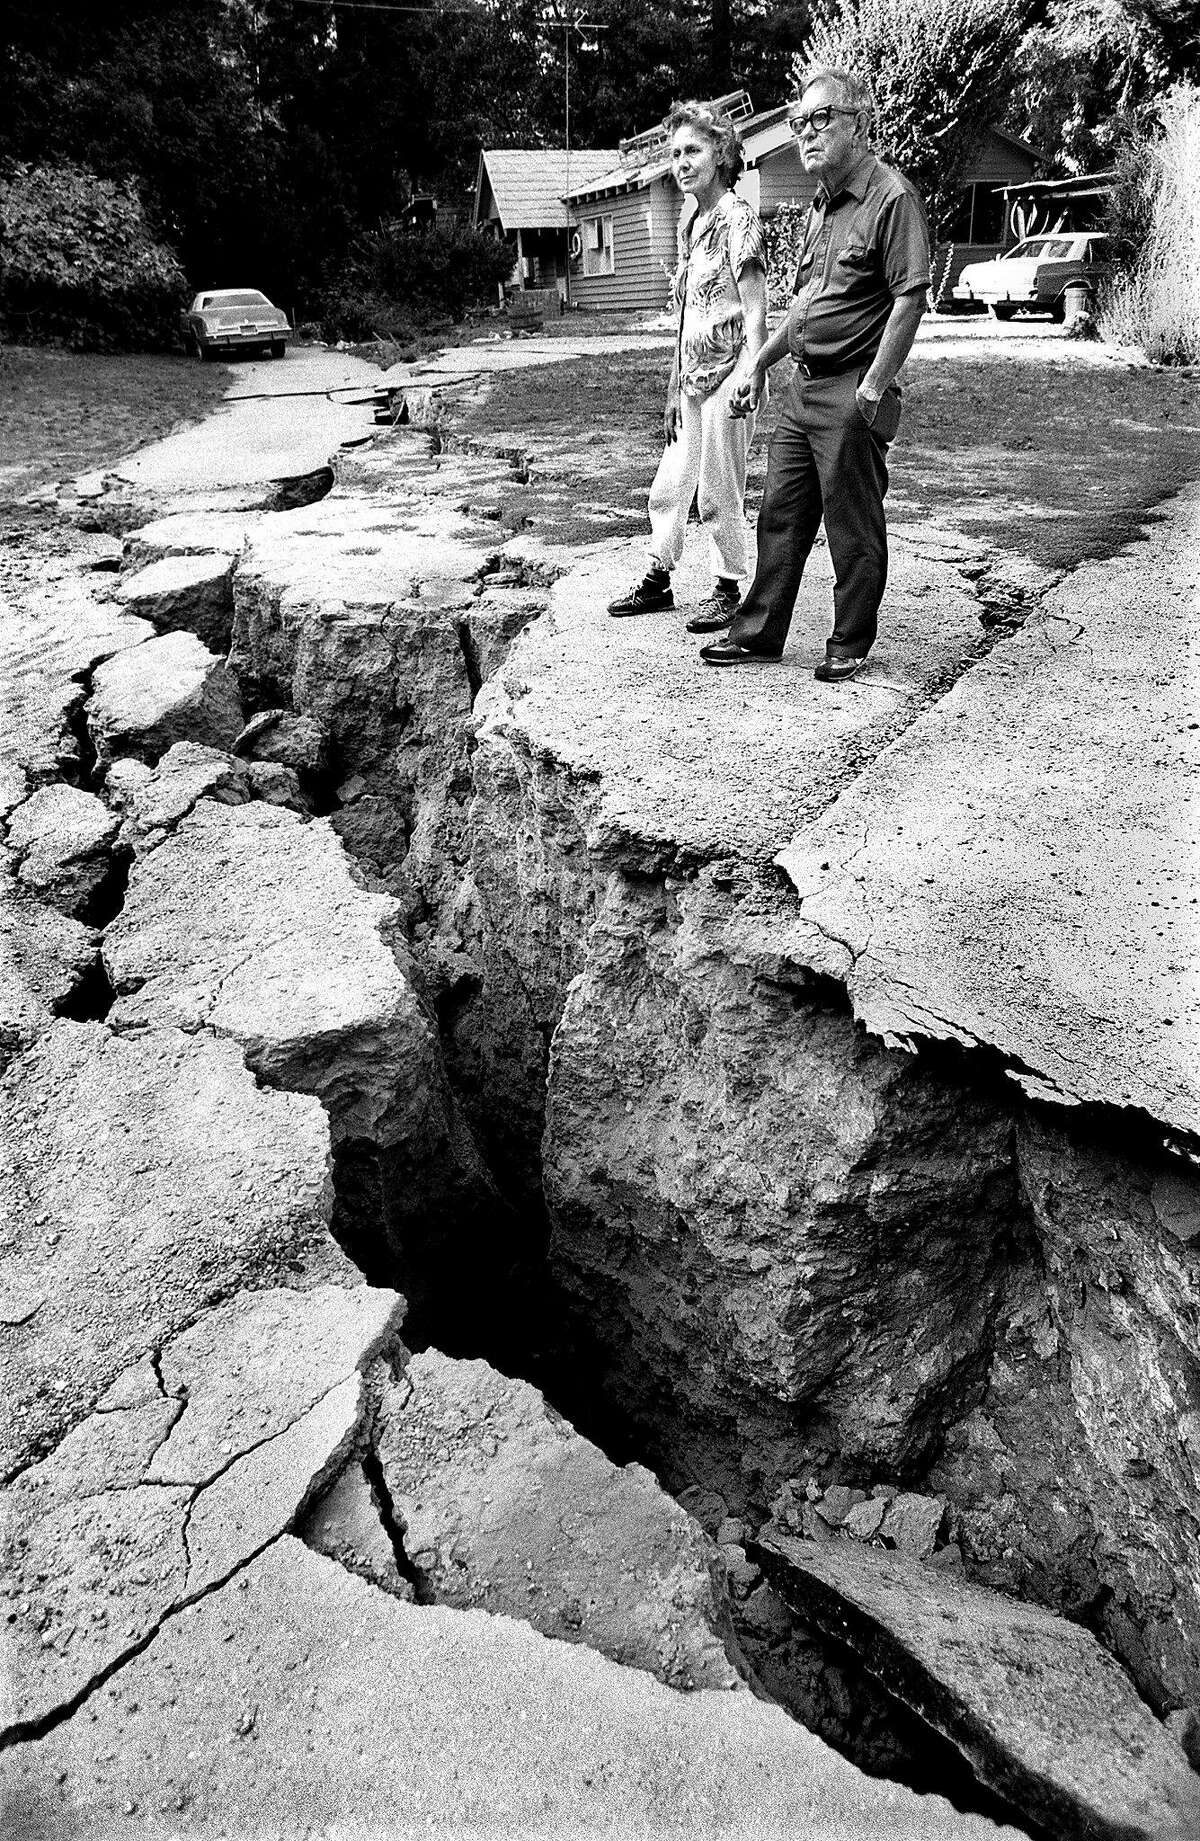 John and Freda Tranbarger stand by a huge crack that opened up in their front yard after the Loma Prieta earthquake struck. They live near the epicenter in the Santa Cruz mountains. Loma Prieta Earthquake. samsstory